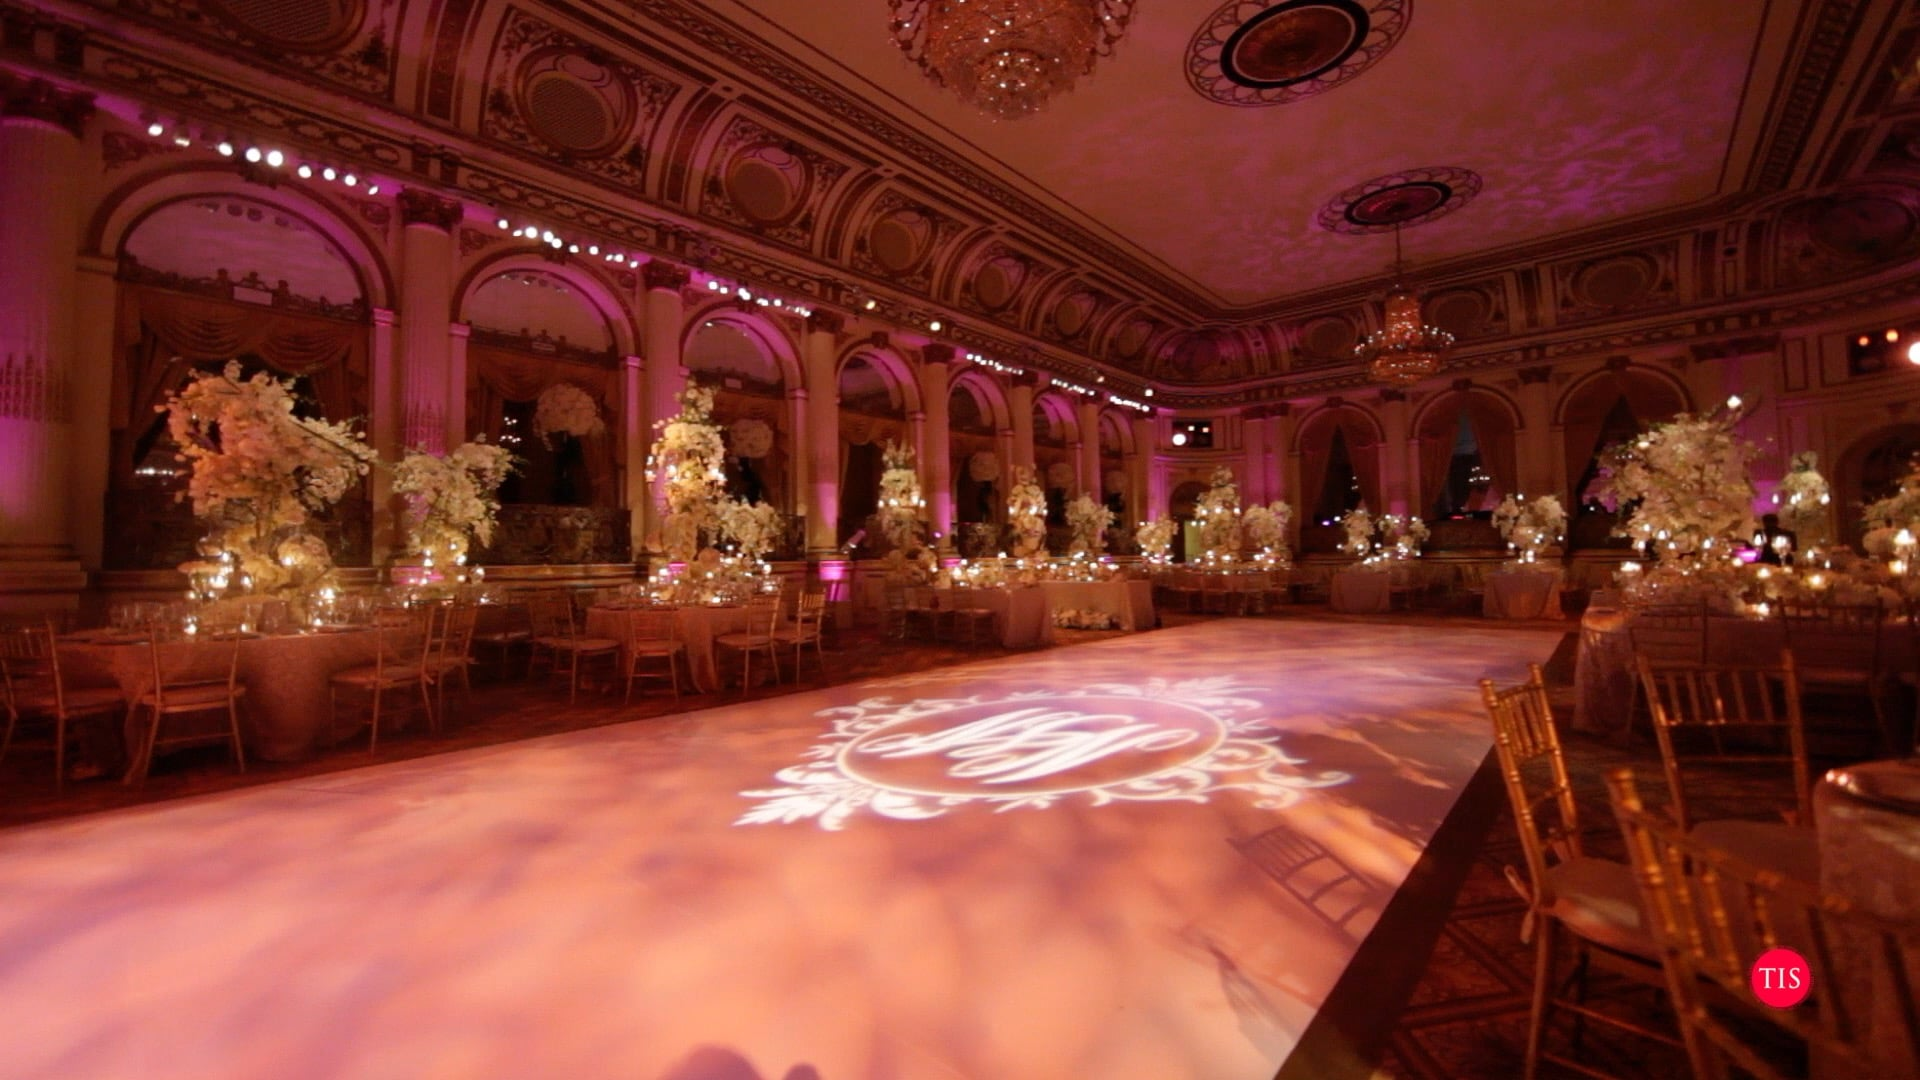 Wedding at The Plaza Hotel Filmed by Maring Visuals - Visit www.maringvisuals.com to see more